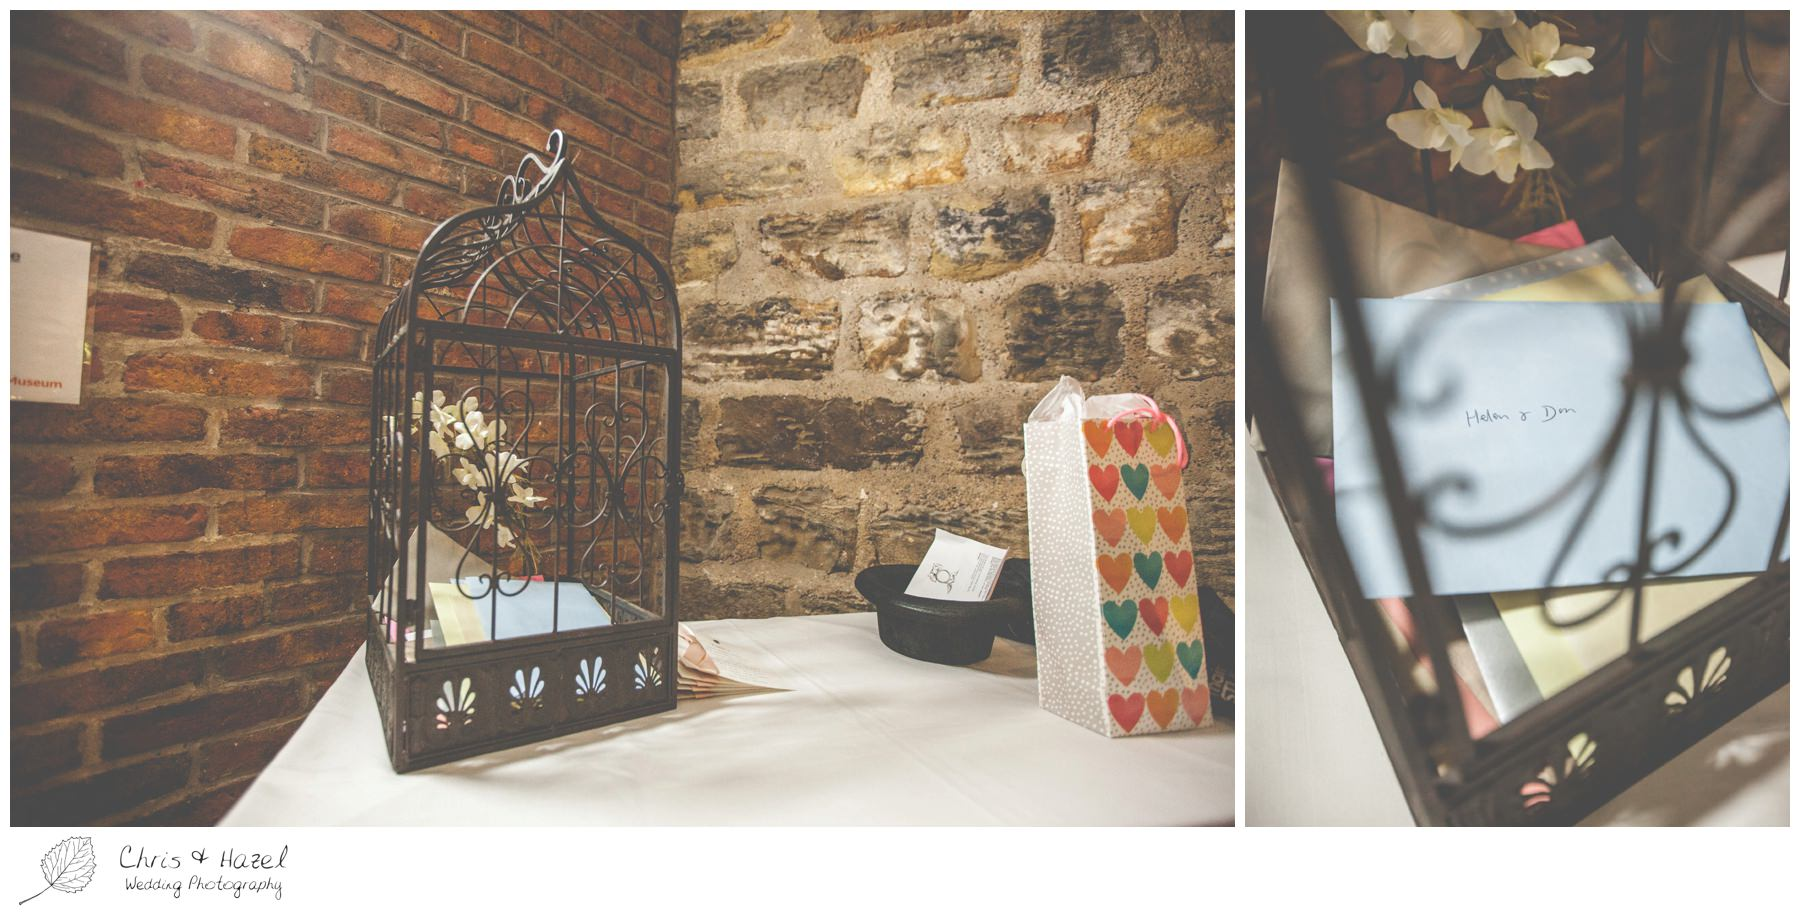 alternative wedding present table, alternative wedding postbox, wedding birdcage for cards and presents, wedding breakfast inside york castle museum, wedding breakfast on york castle museum victorian street, wedding reception on york castle museum victorian street, inside york castle museum, documentary wedding photography, york castle museum, york castle museum wedding, york castle museum wedding photography, york castle museum wedding photographer, york castle museum wedding day, don hayes, , helen hayes, chris and hazel wedding photography, chris & hazel,